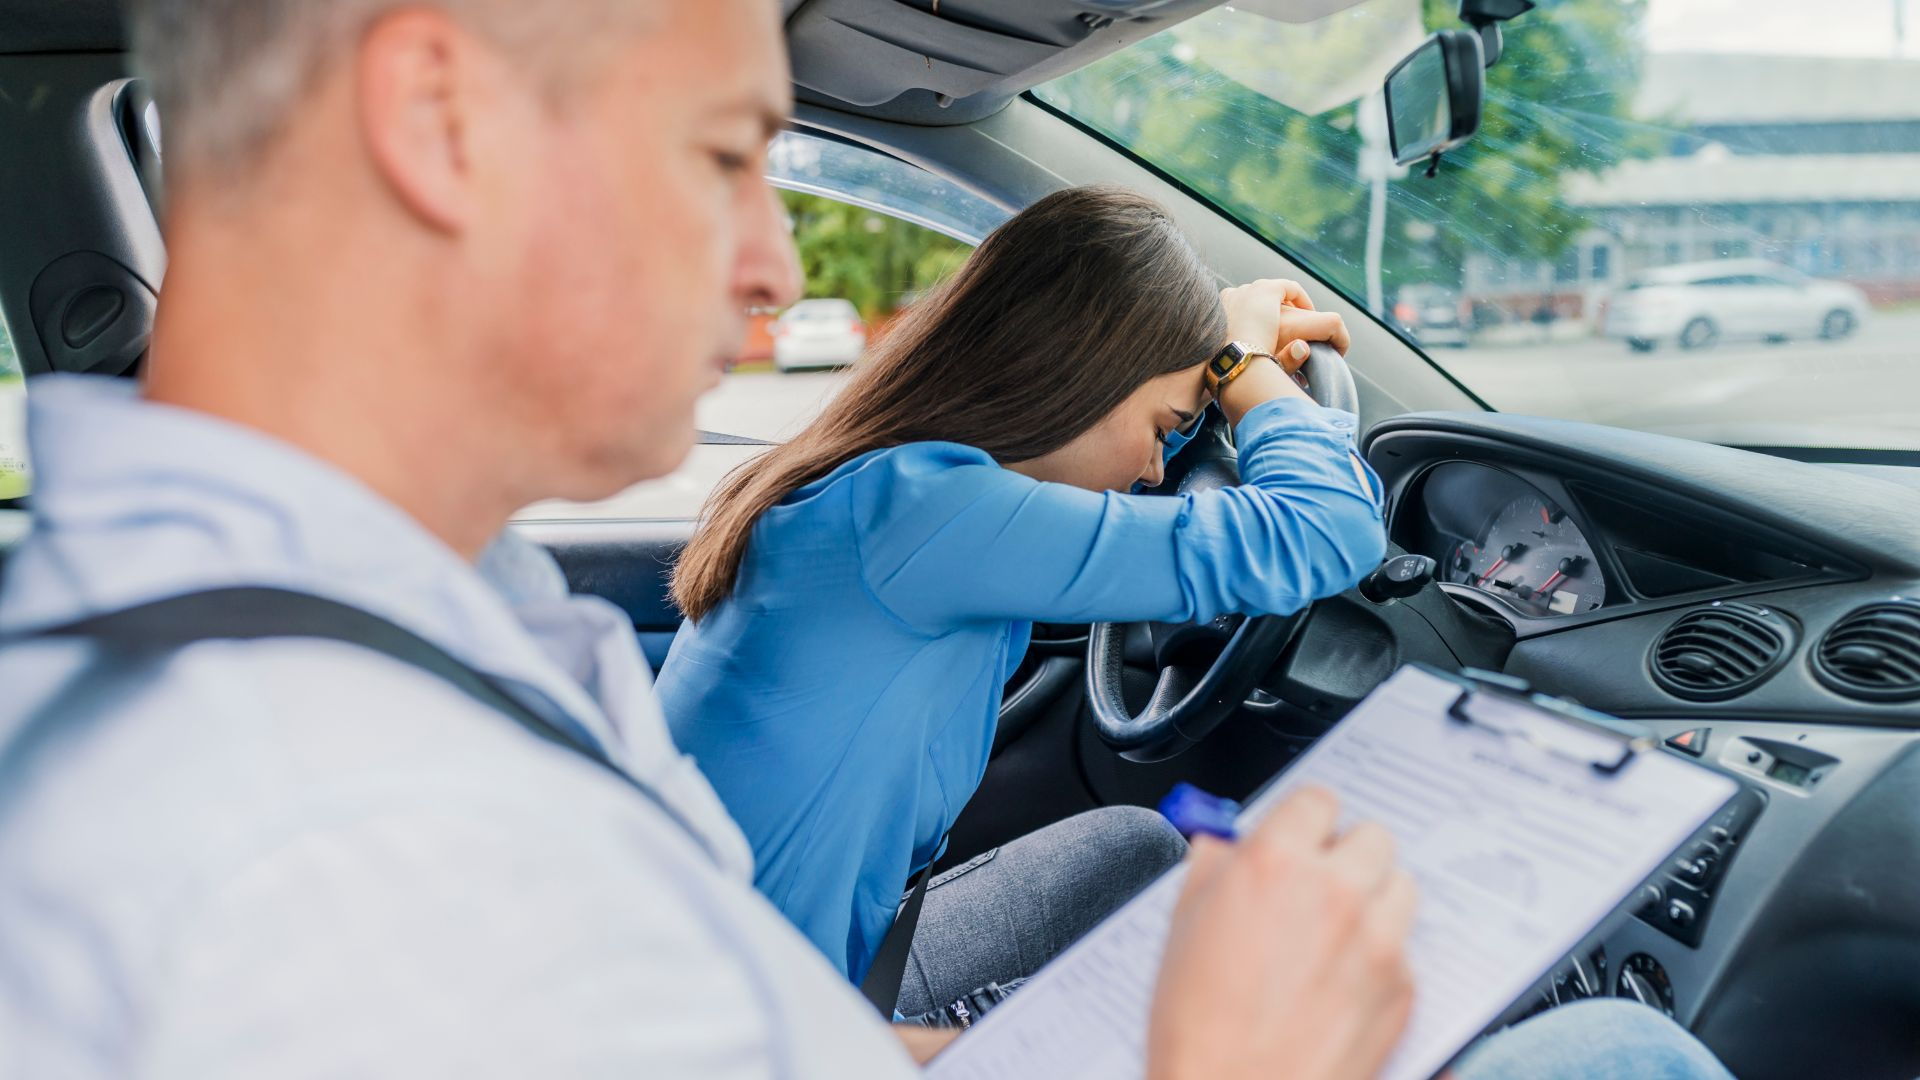 Revealed: the most likely reasons for failing the driving test